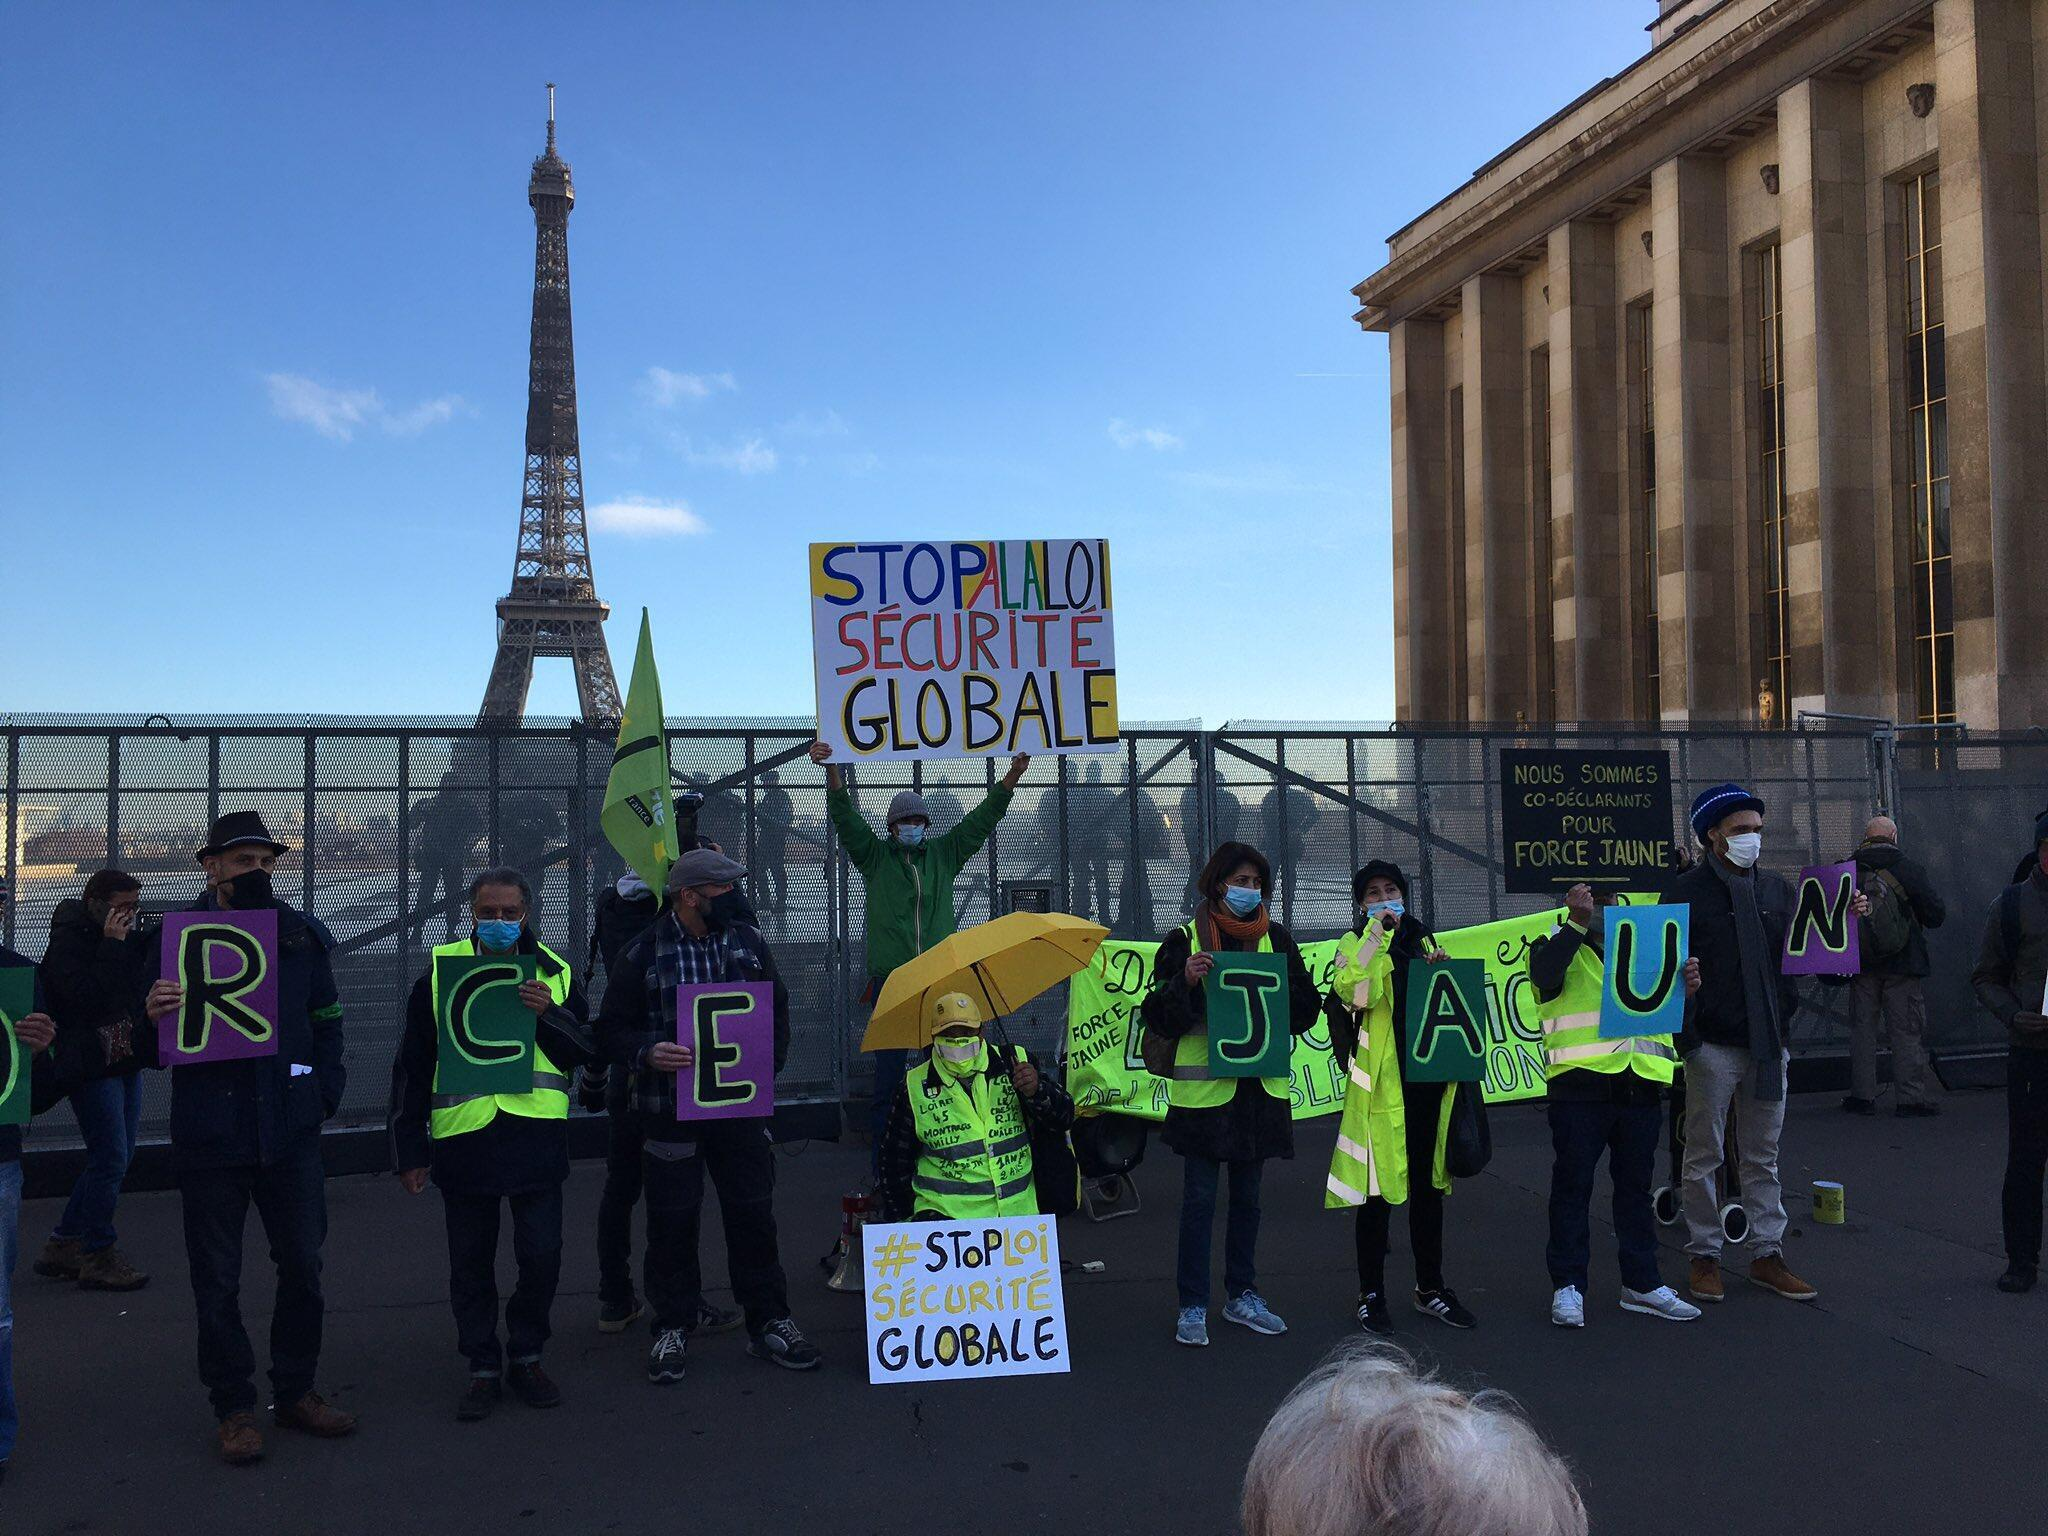 Protesters gather in Paris against the global security bill_21 Nov 2020_Credit Mike Woods